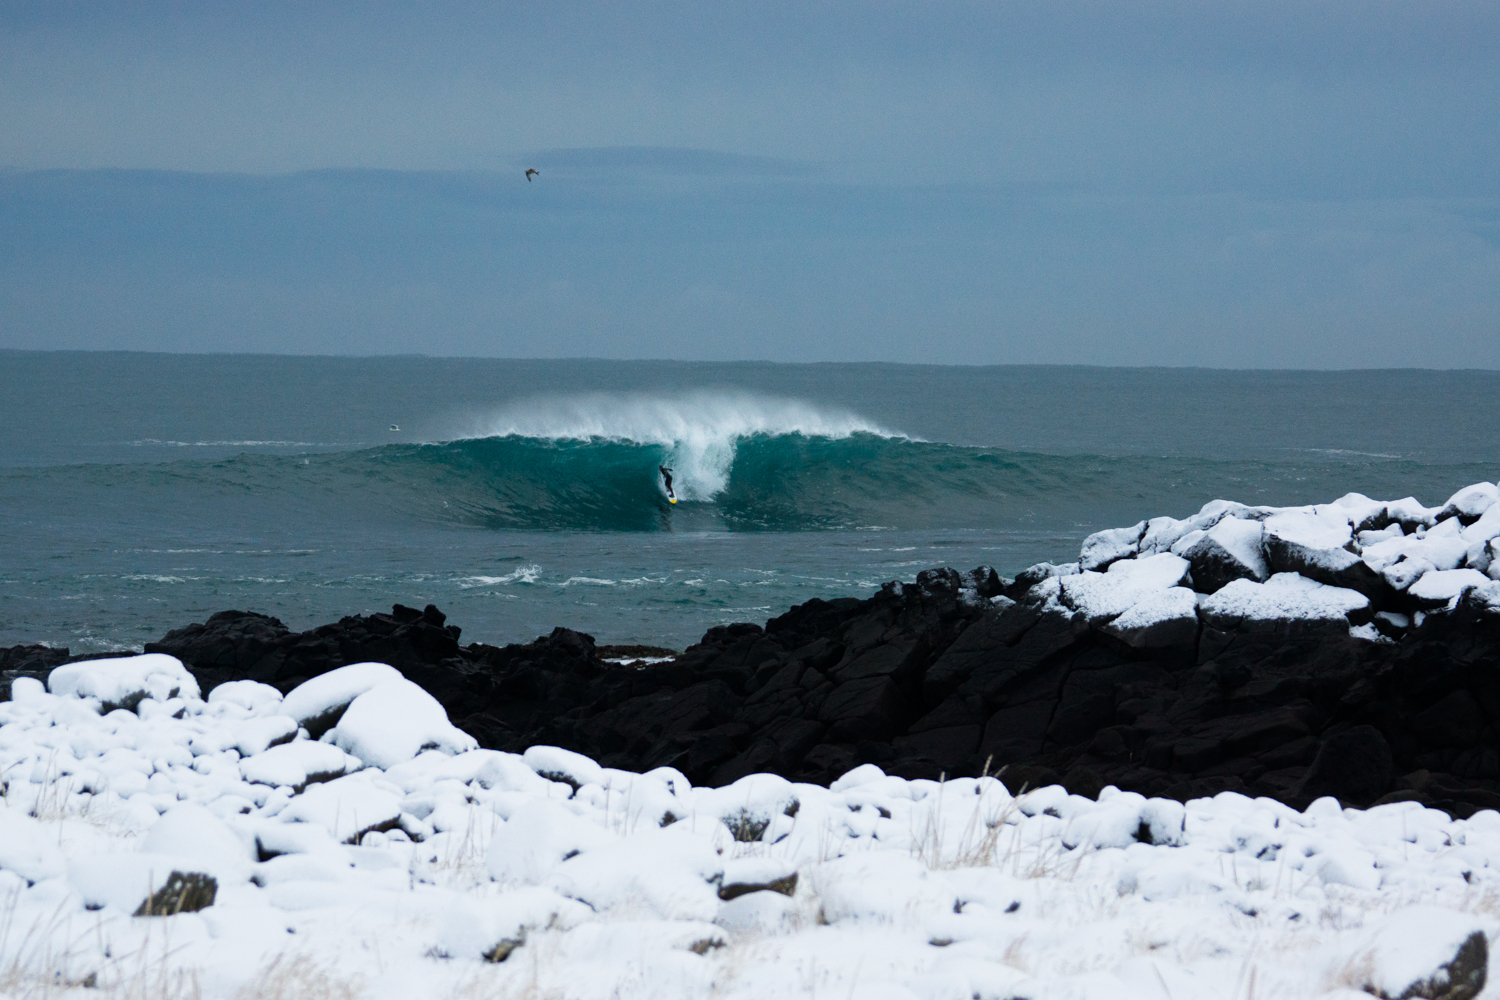 Photo of Nate Zoller by Chris Burkard